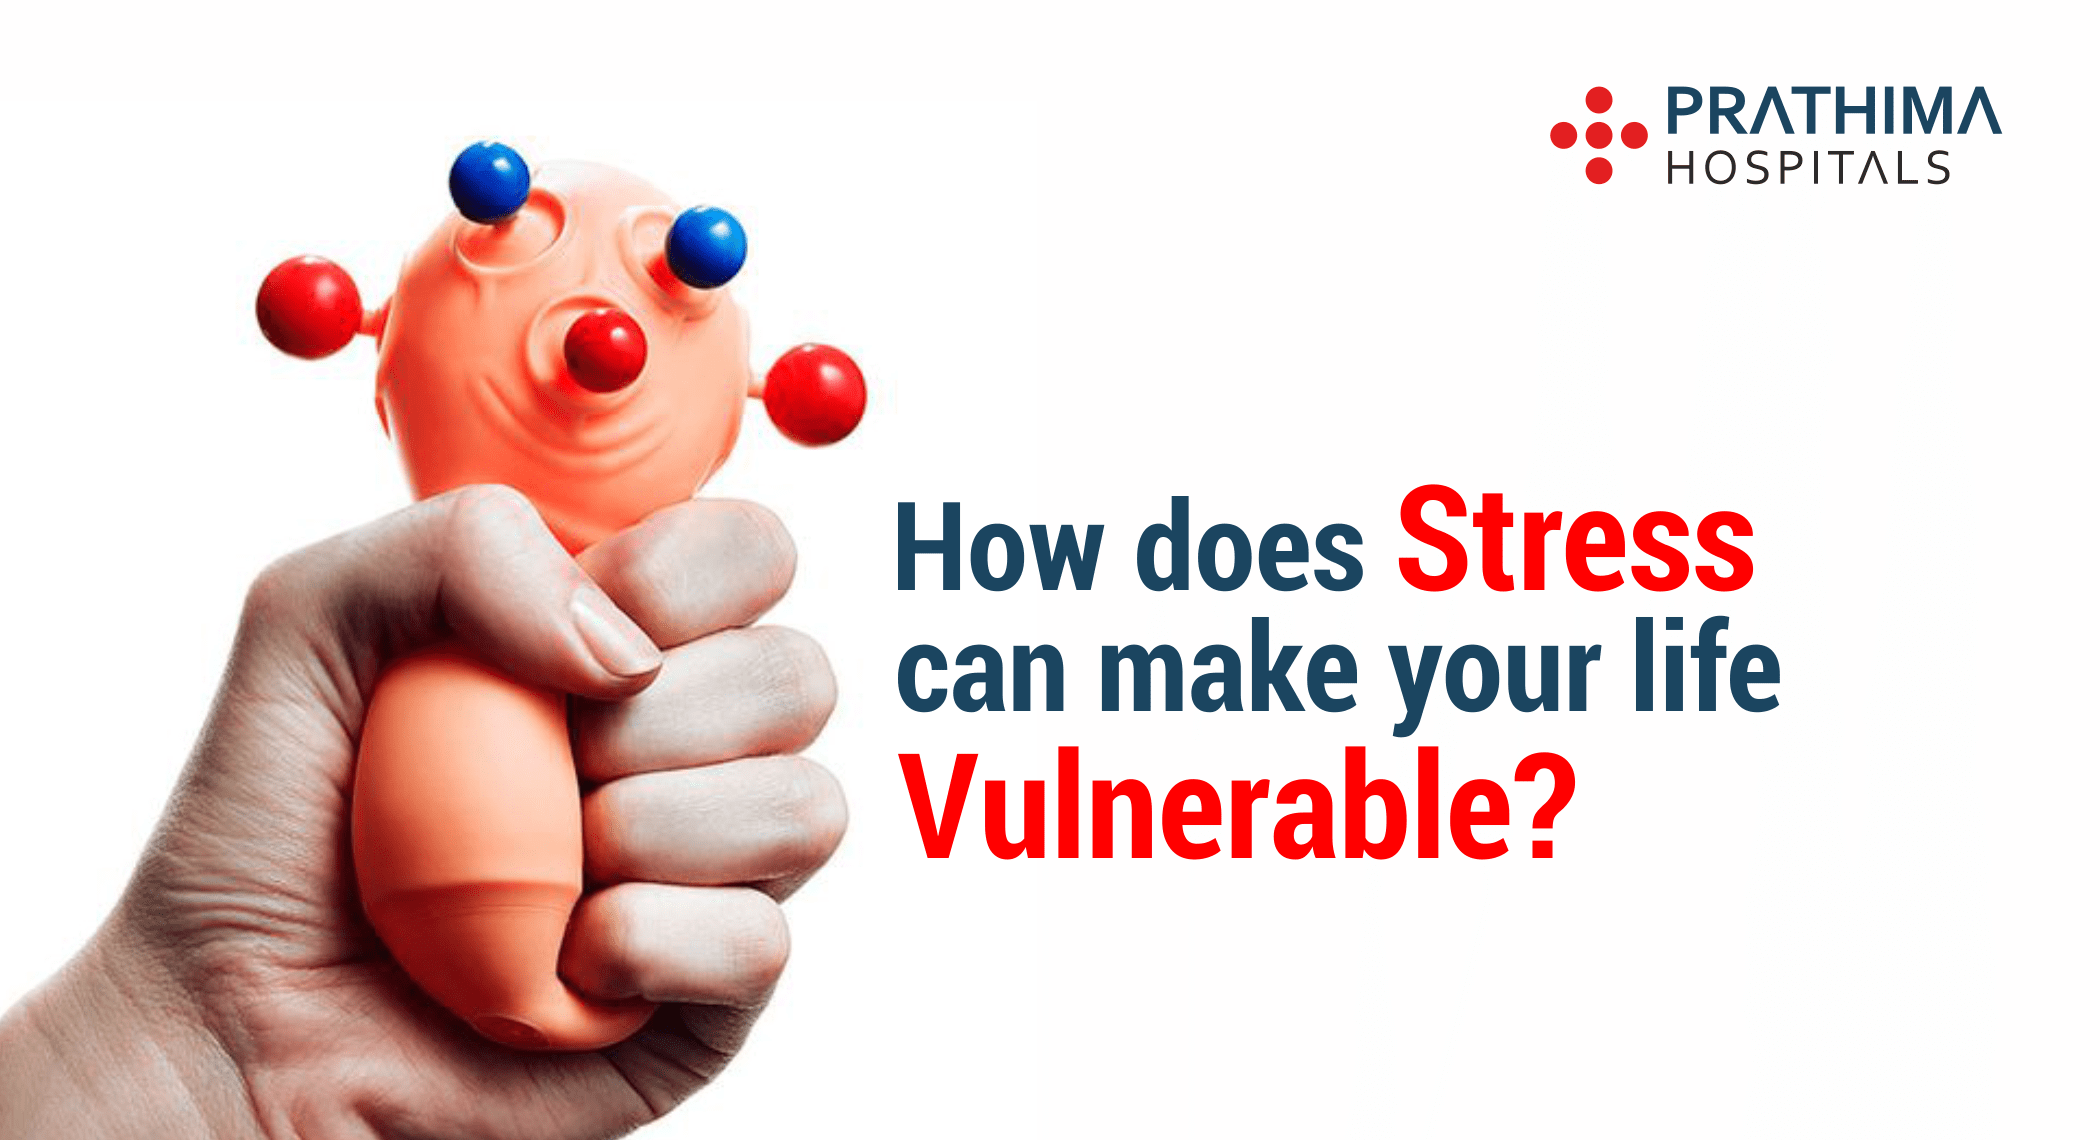 How does stress affects us